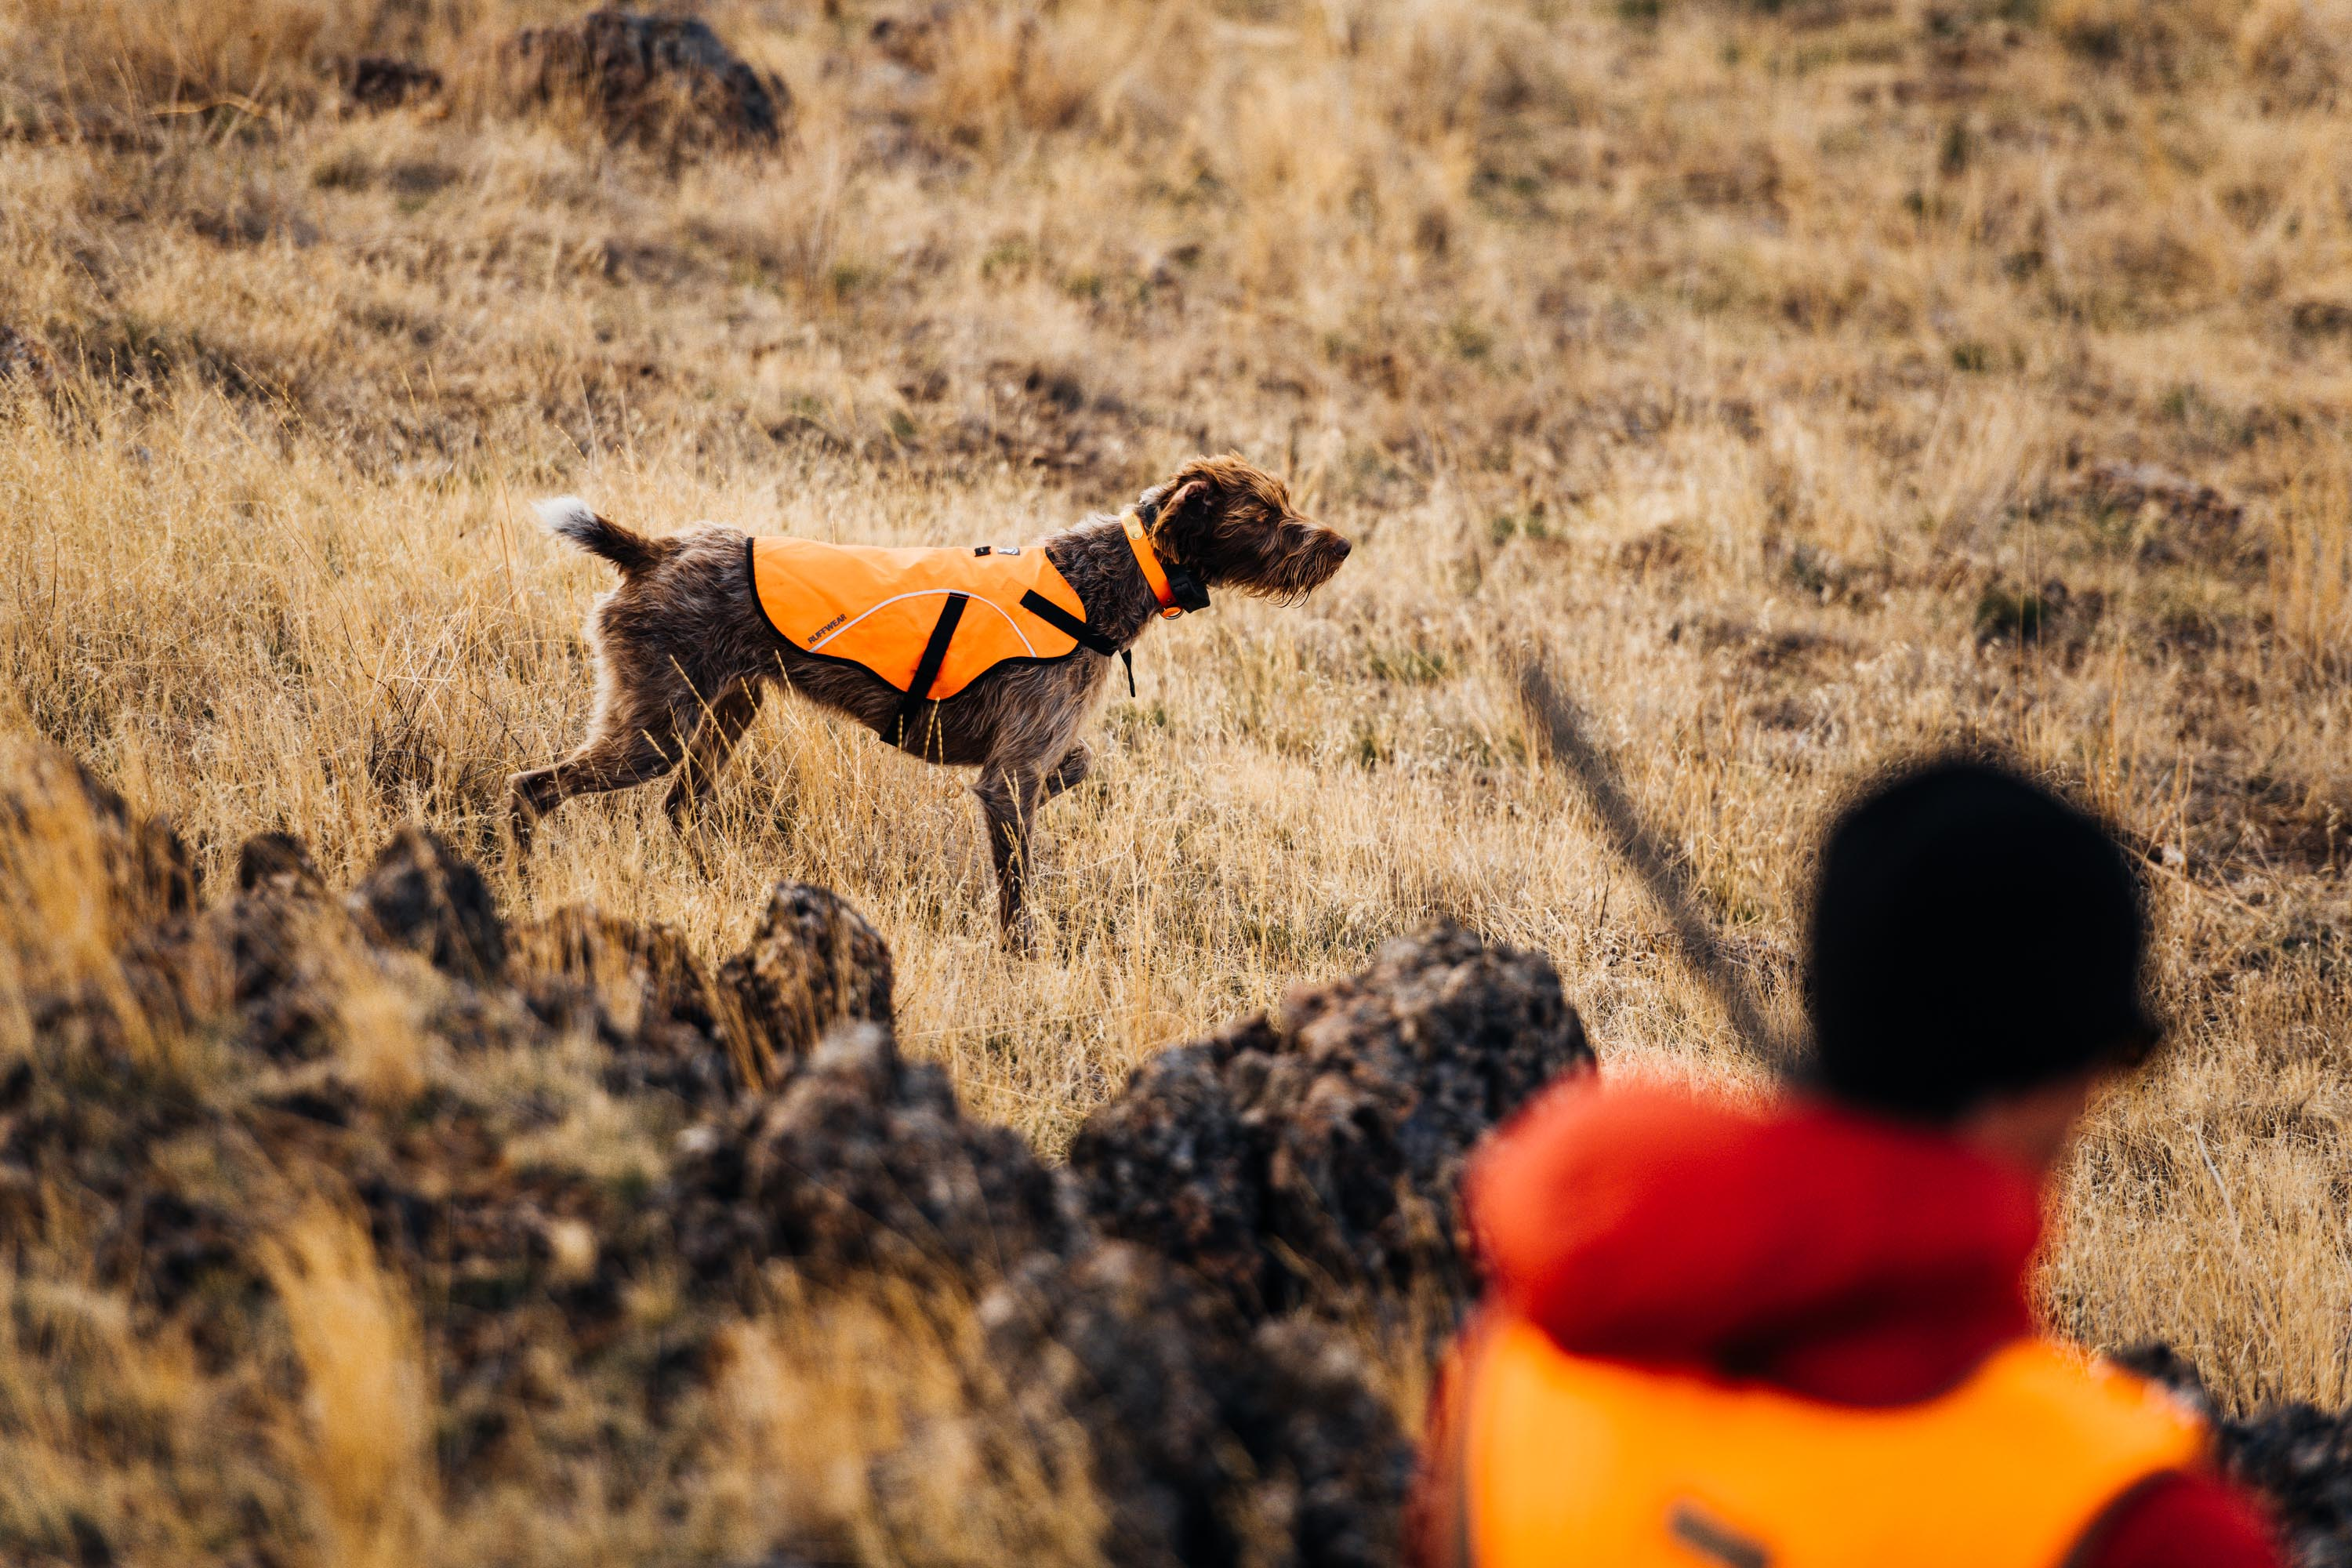 Bird Hunting in Idaho - Greg Mionske - Advertising and Editorial Photographer in Denver